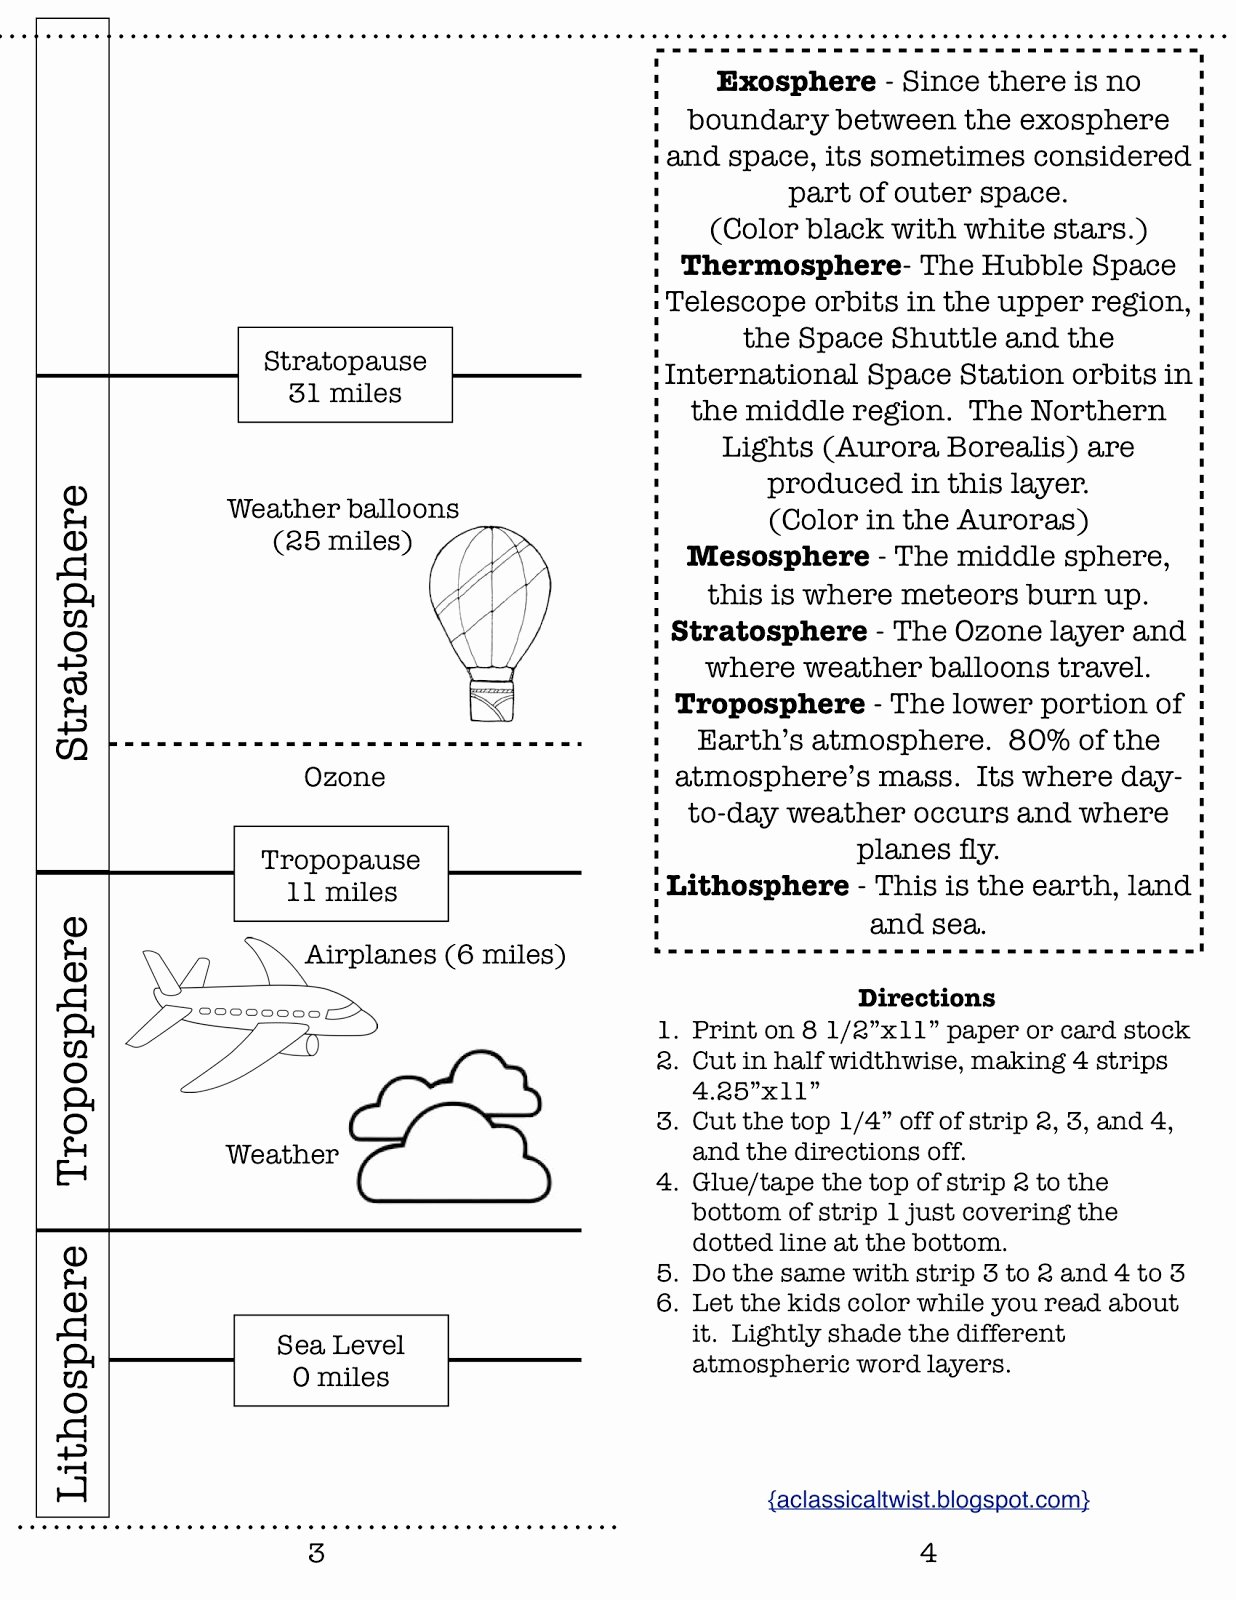 Layers Of the atmosphere Worksheet Beautiful Homeschooling with A Classical Twist Earth S atmosphere